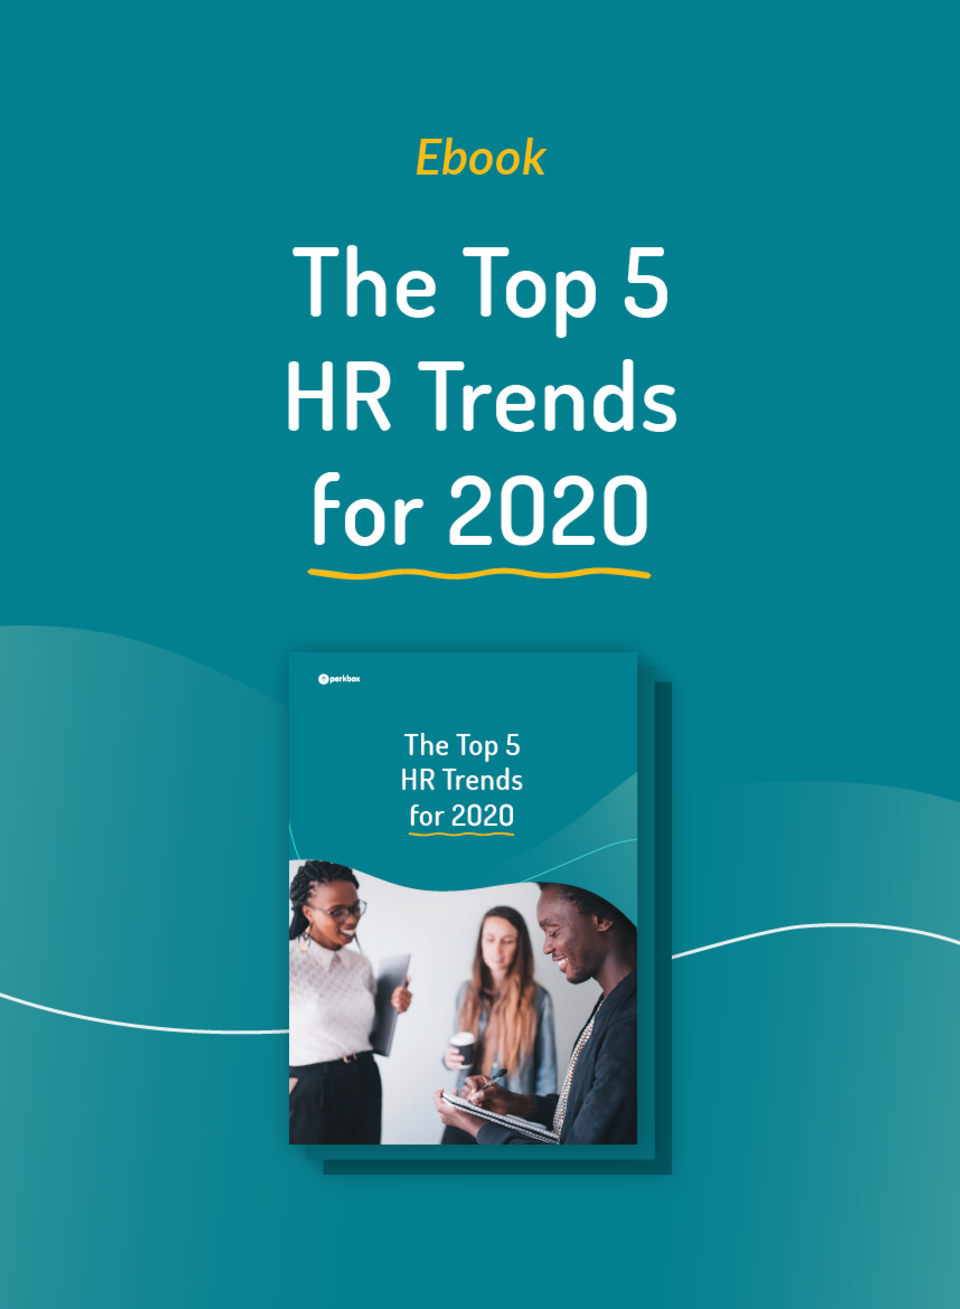 The Top 5 HR Trends for 2020